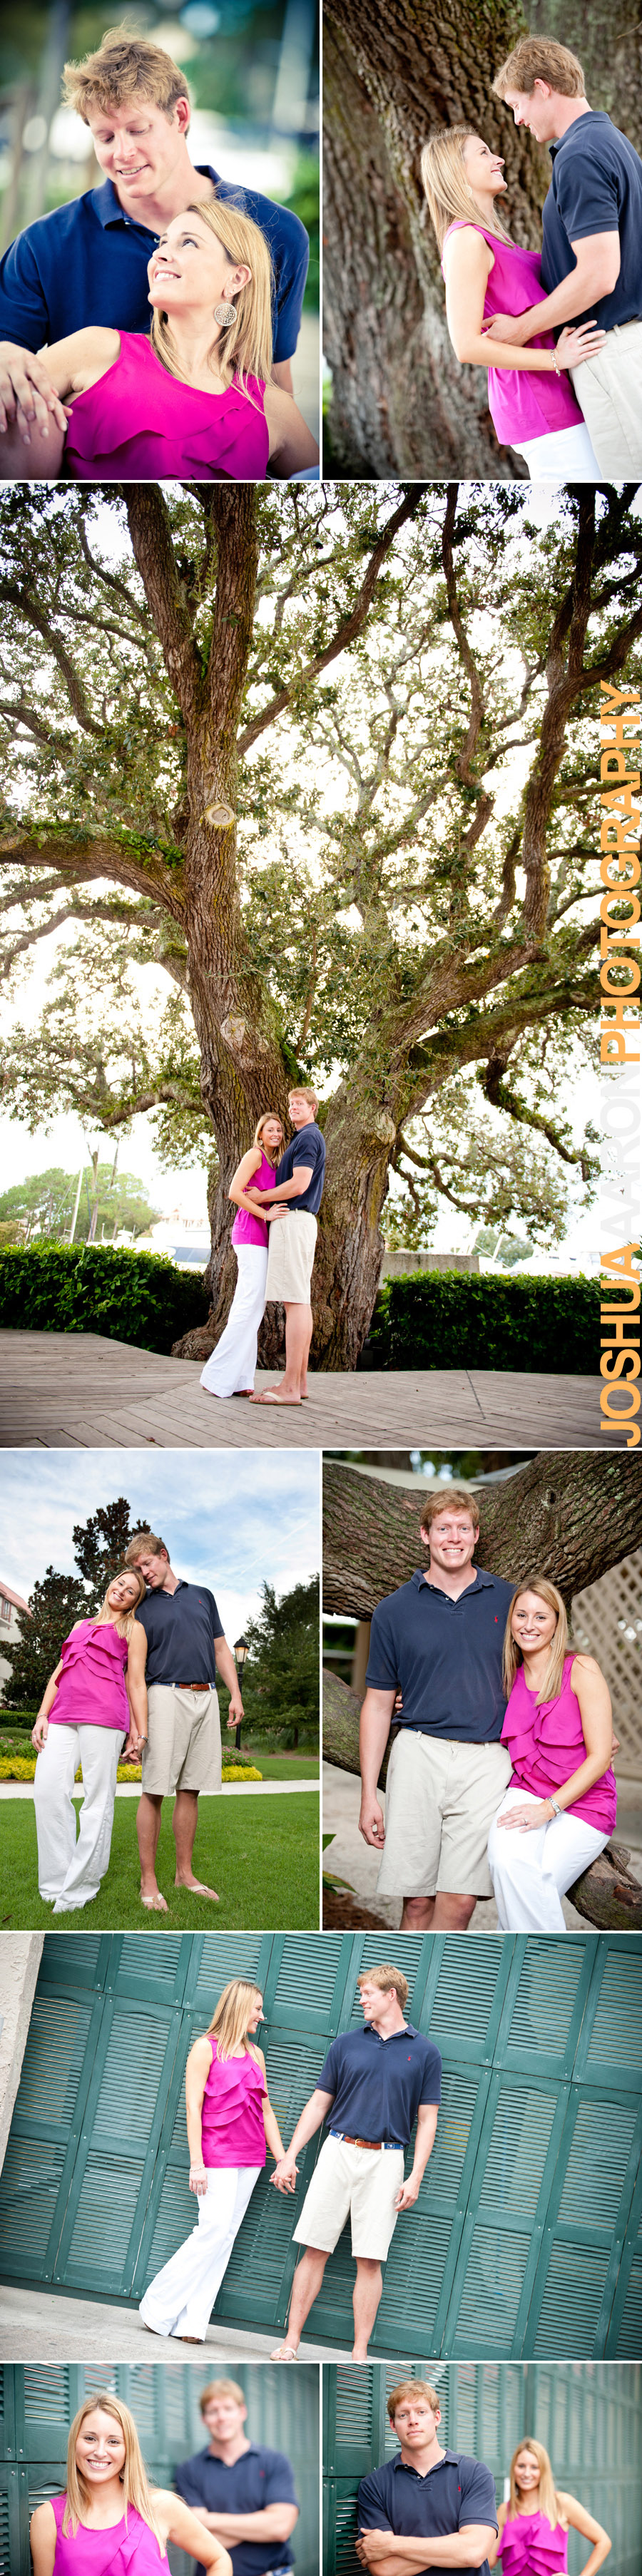 Engagement session with Tiffany and Mitch in Hilton Head, SC